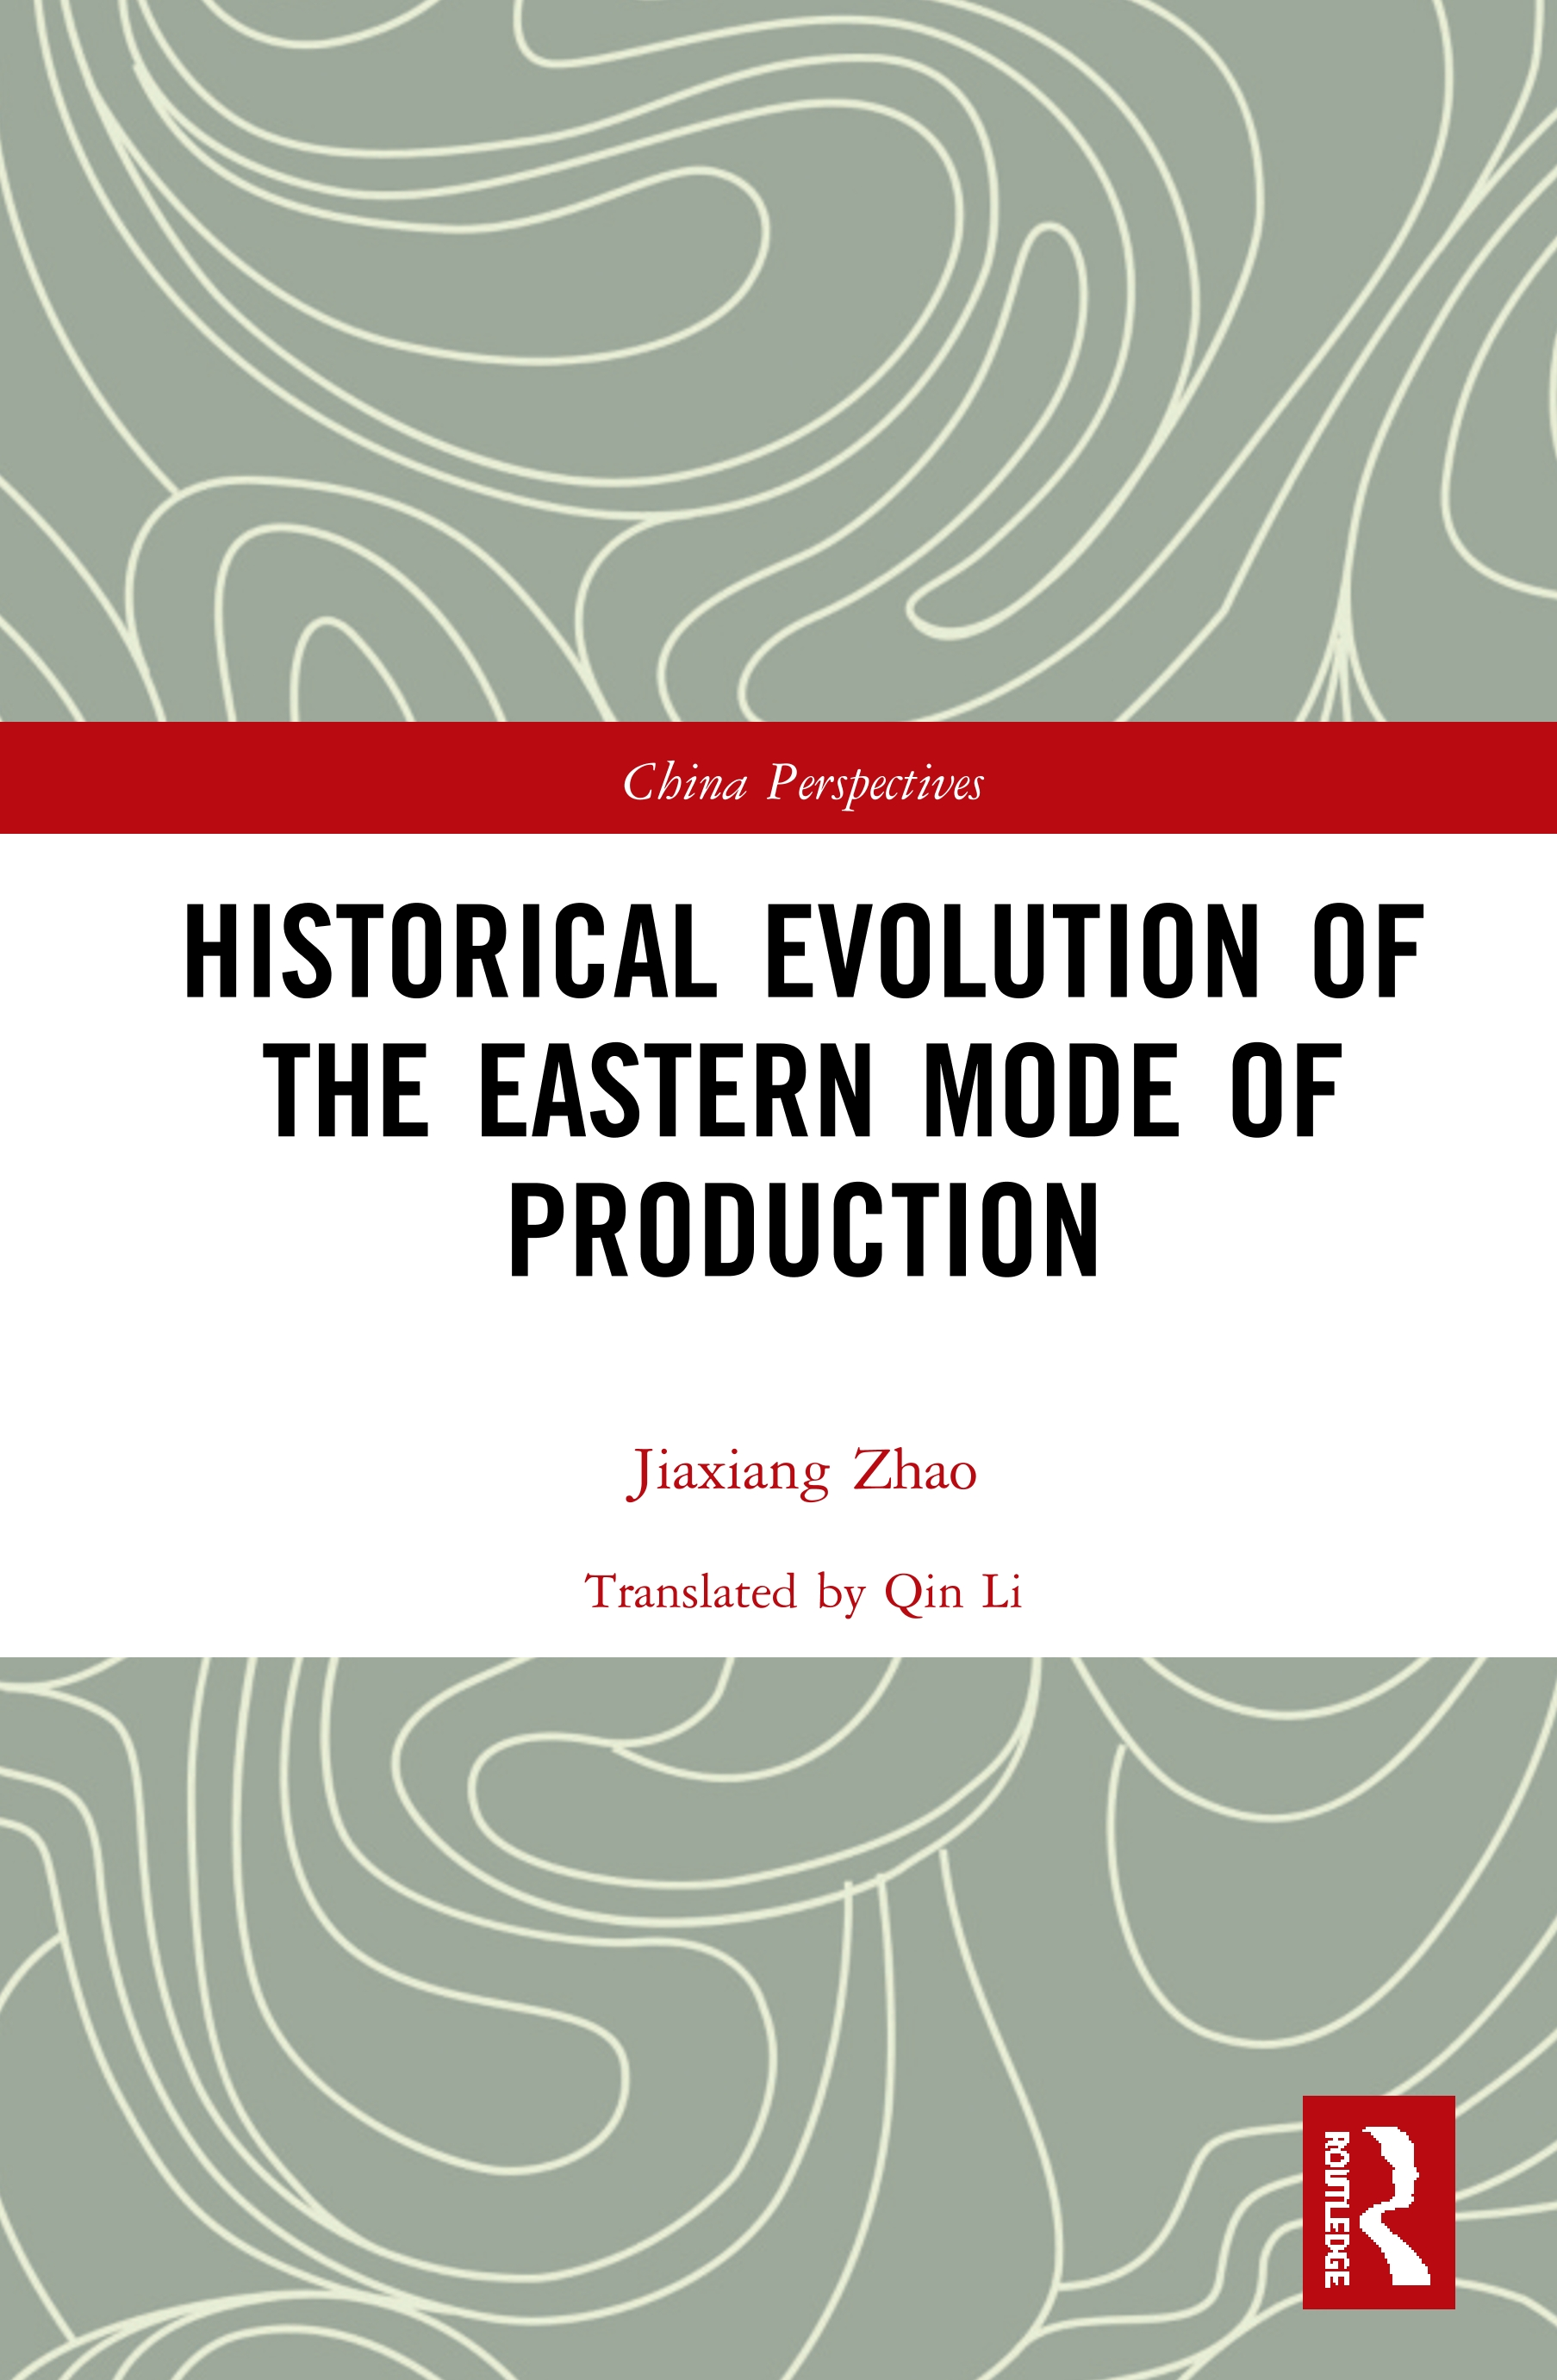 Historical Evolution of the Eastern Mode of Production